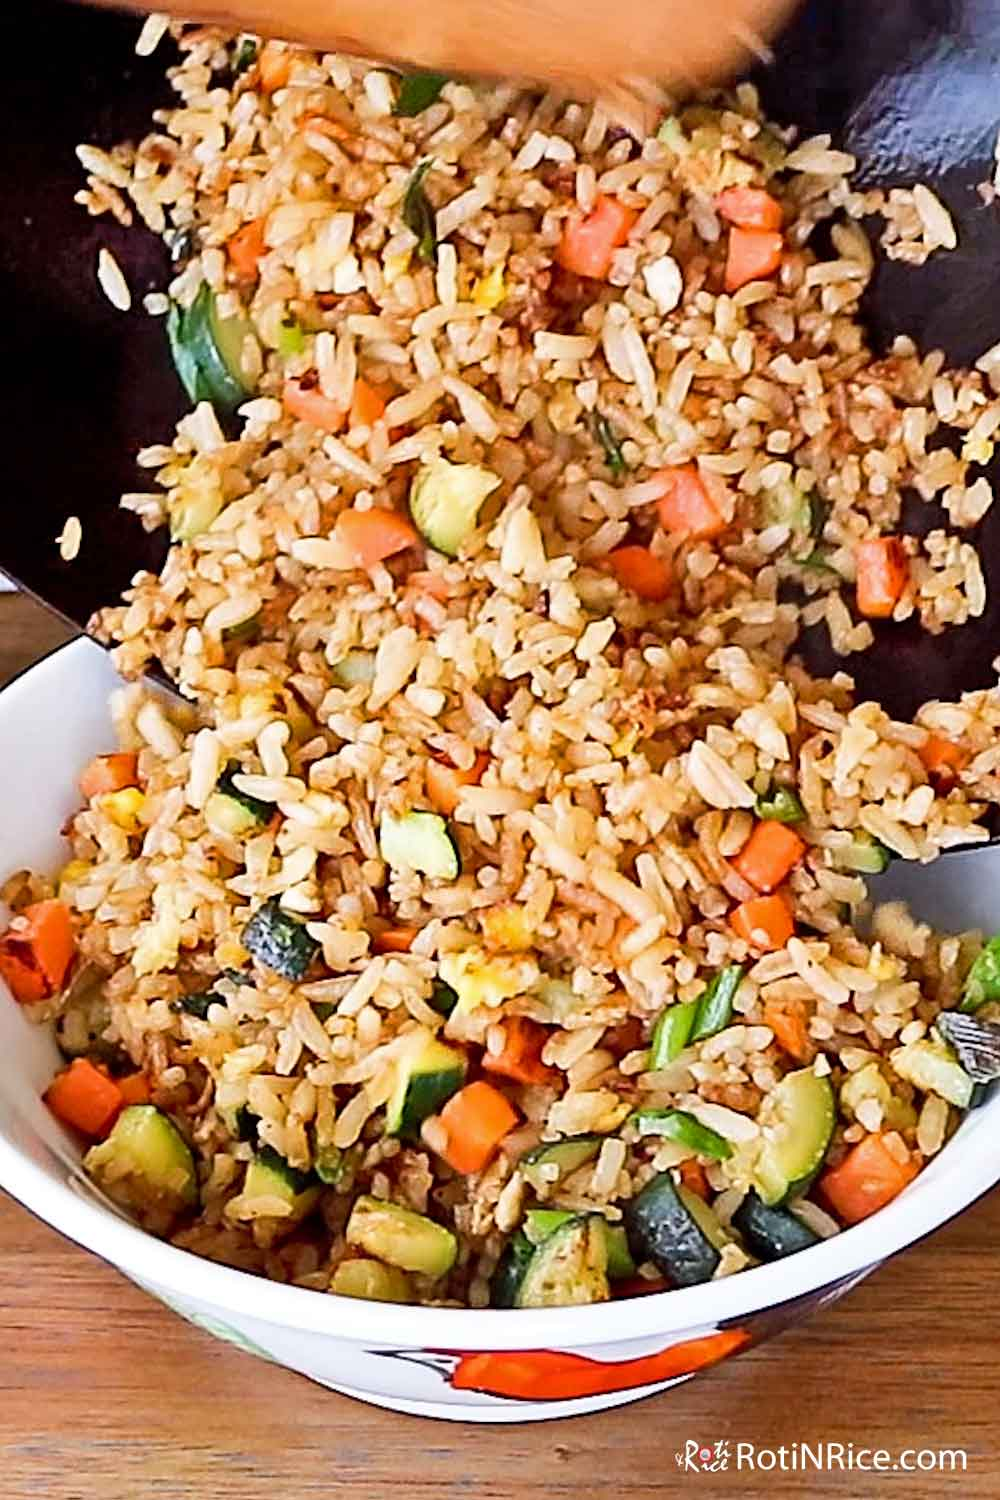 Fluffy Zucchini and Egg Fried Rice